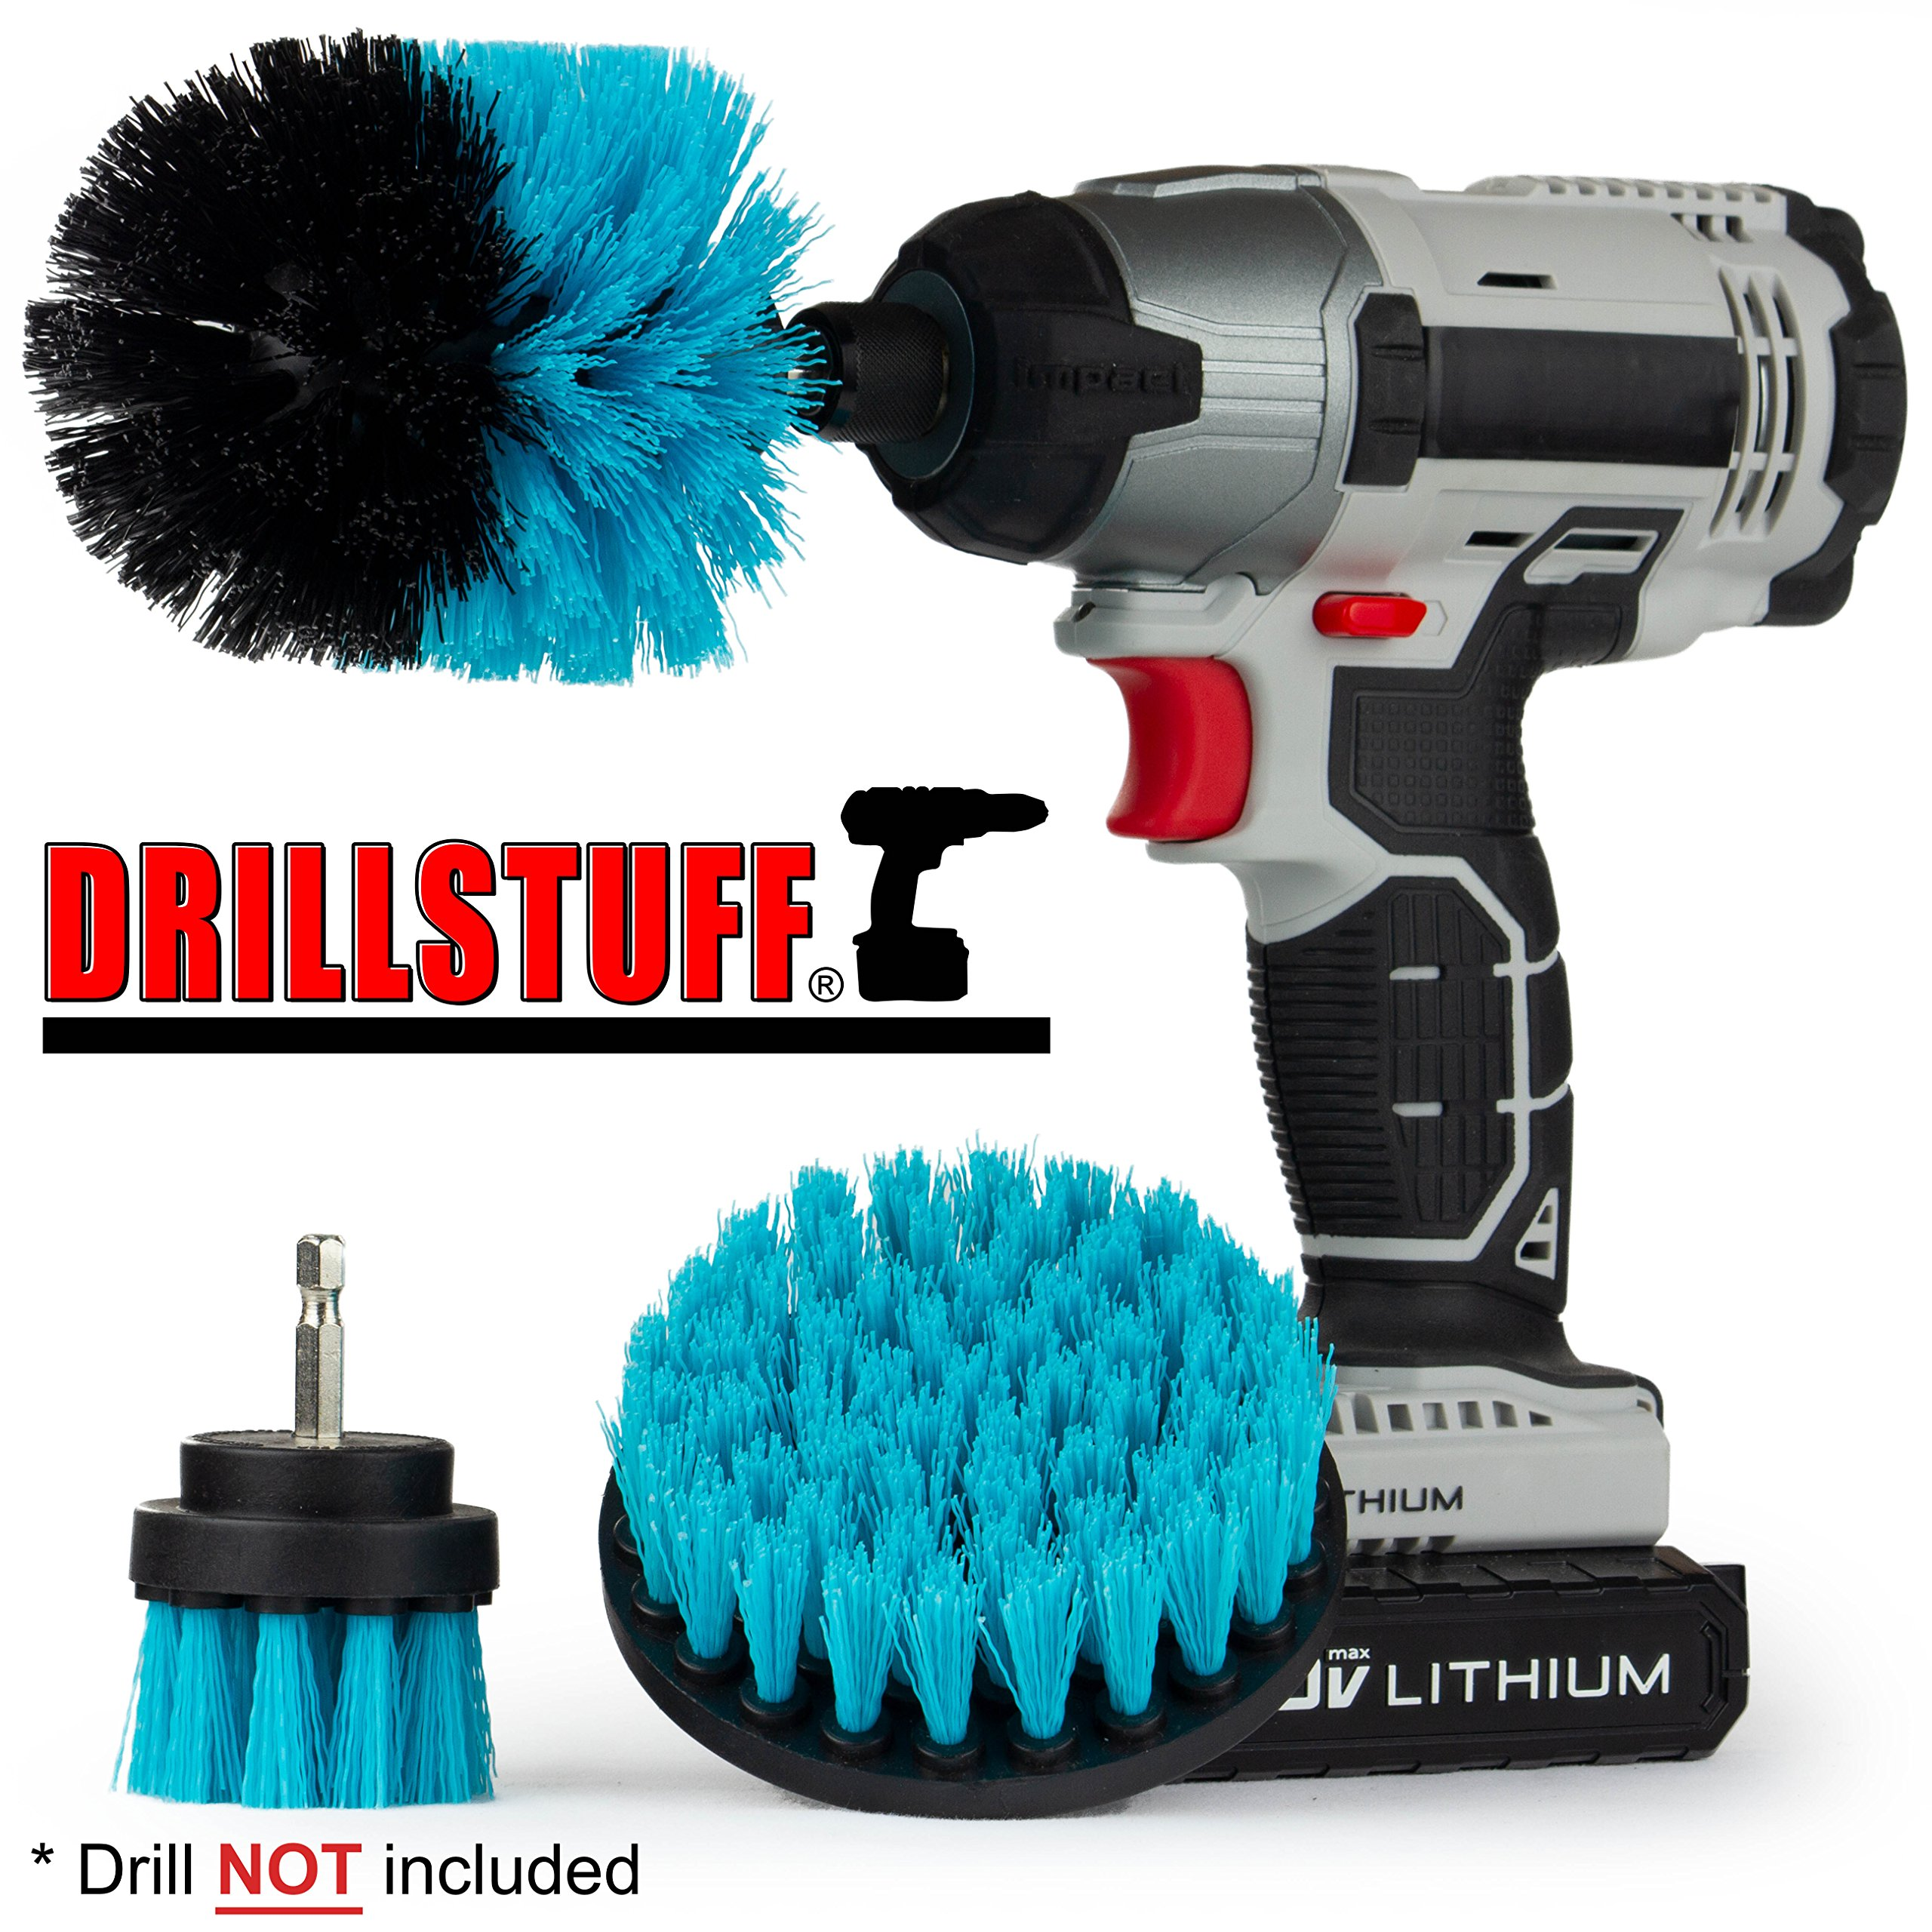 Swimming Pool Accessories - Drill Brush Kit for Liners, Walls, Deck, and Carpet - Clean Slides, Diving Boards, Ladders and Swim Steps – Pool Cover Brush Heads - Spa and Hot Tub Power Scrub Brushes